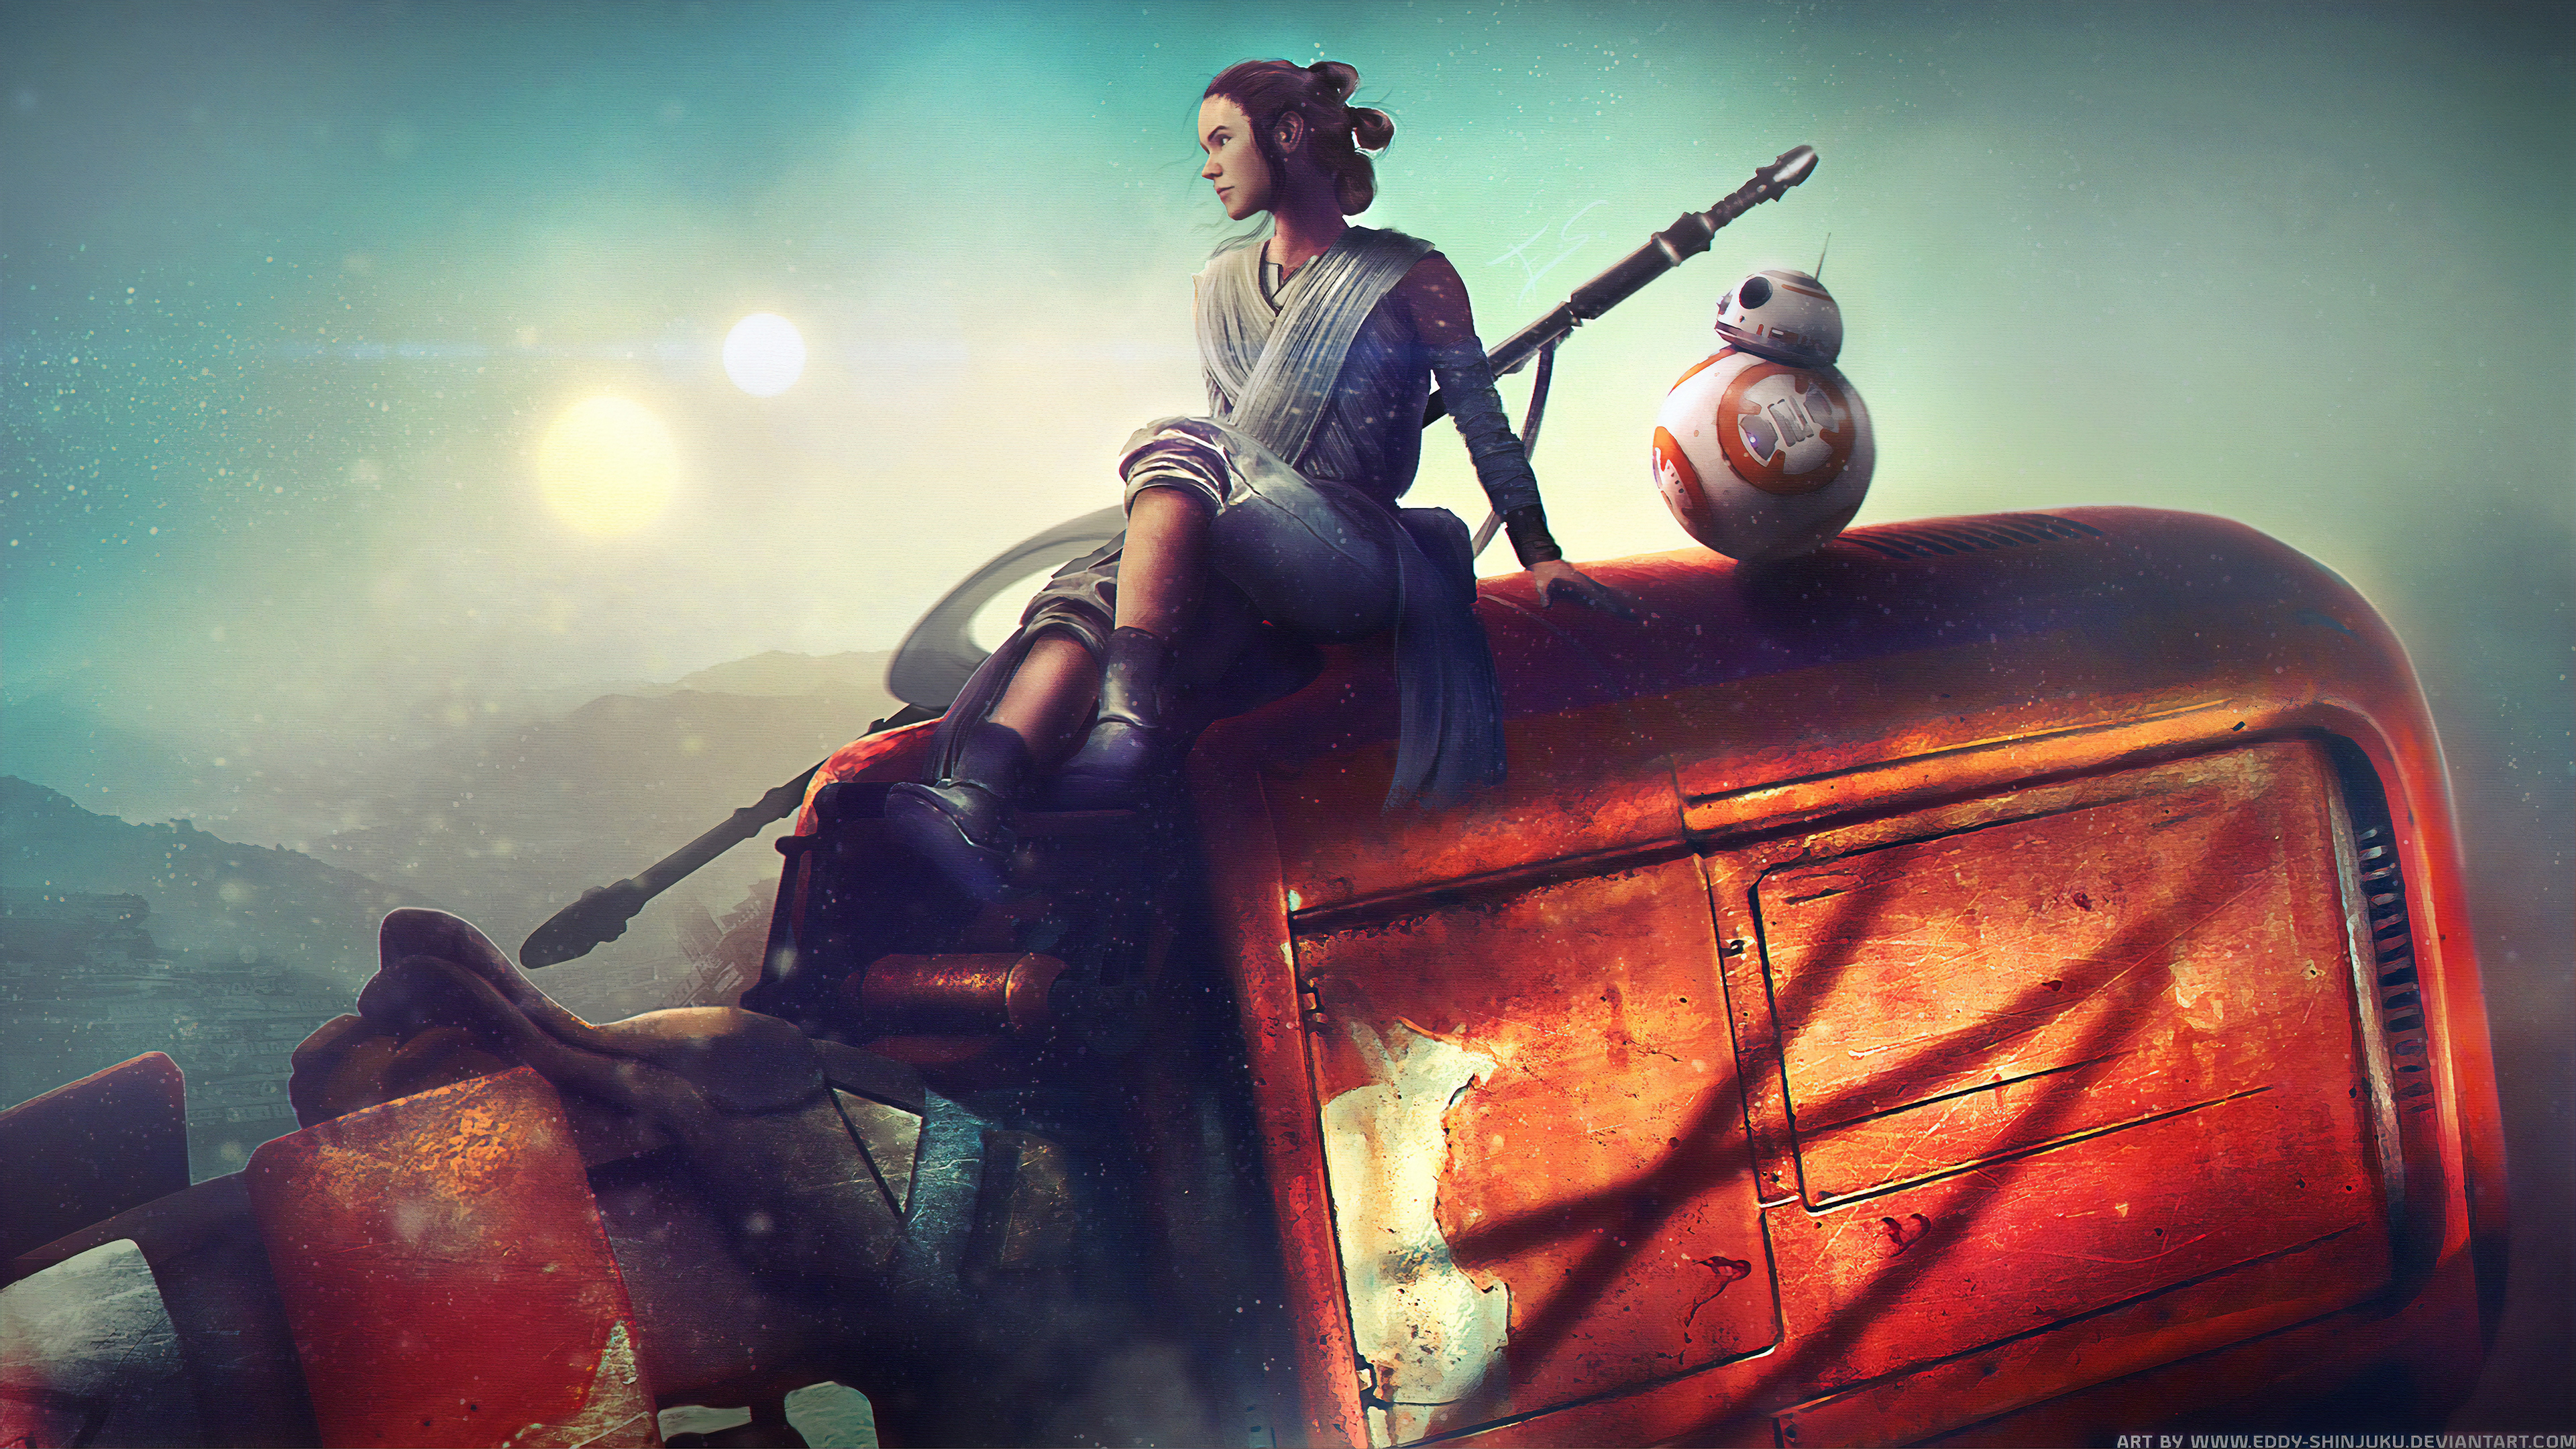 star wars the force awakens 1562107065 - Star Wars The Force Awakens - star wars wallpapers, rey wallpapers, hd-wallpapers, digital art wallpapers, deviantart wallpapers, bb 8 wallpapers, artwork wallpapers, artist wallpapers, 4k-wallpapers